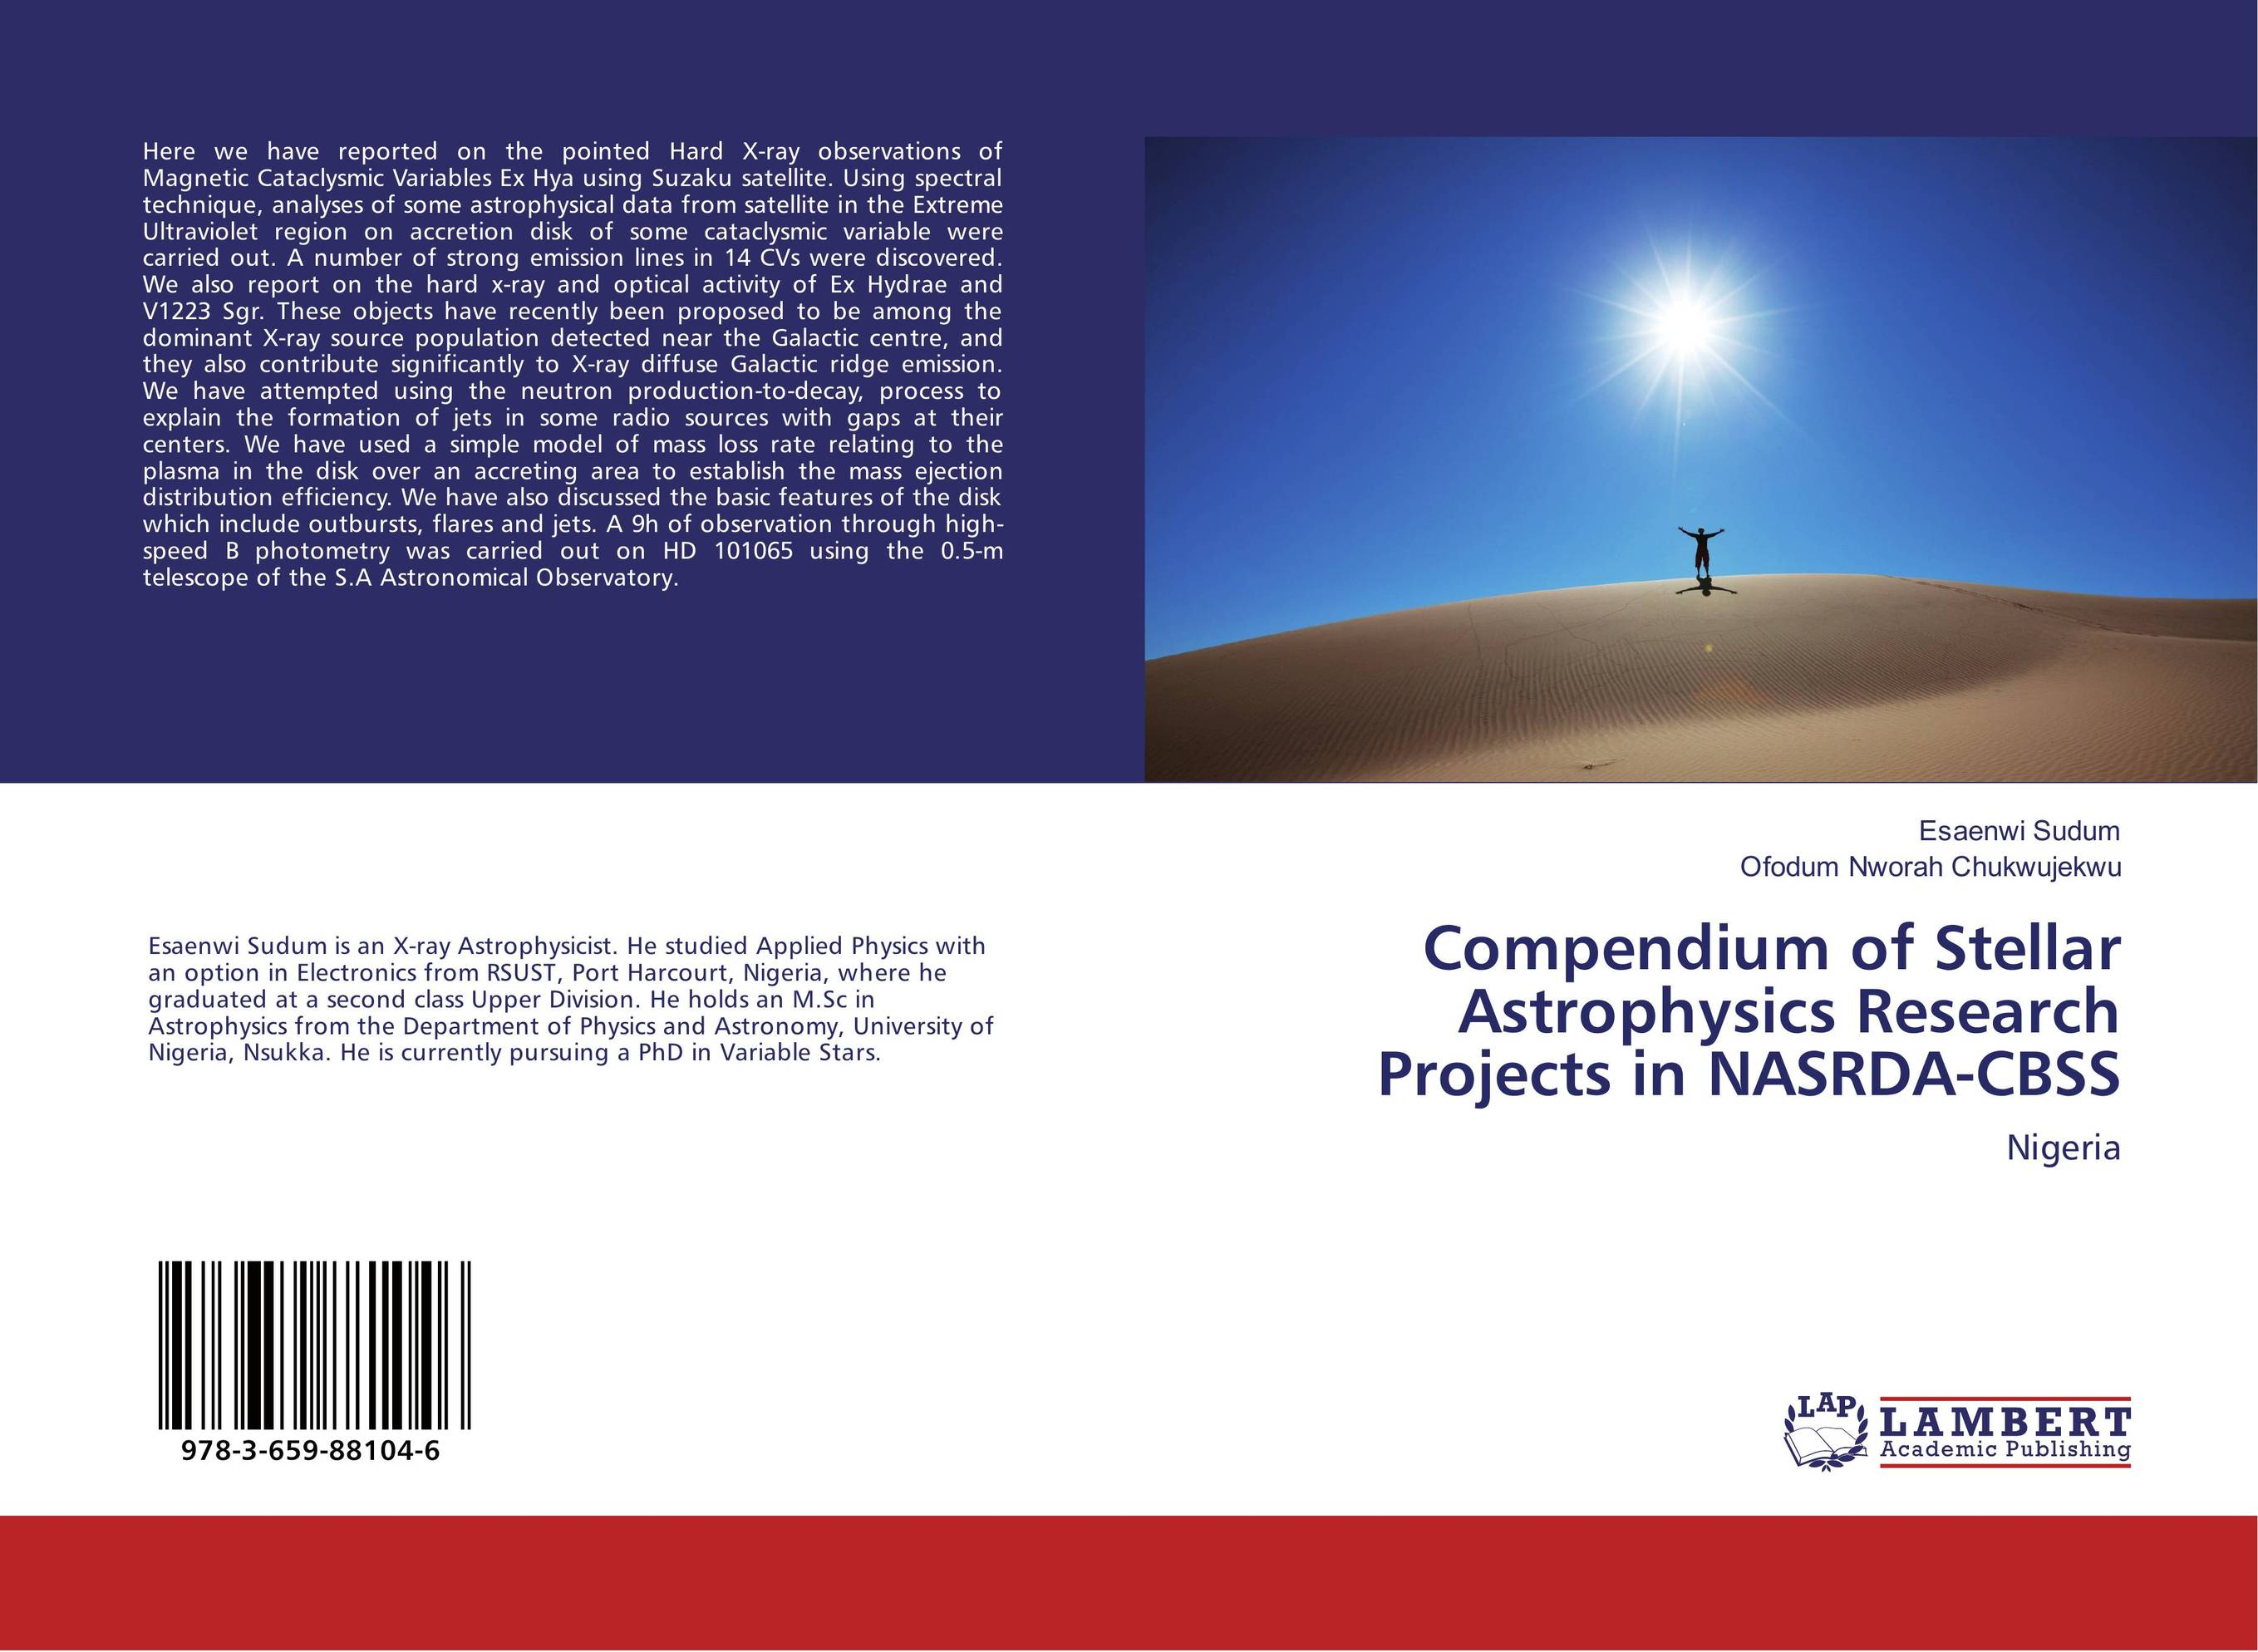 Compendium of Stellar Astrophysics Research Projects in NASRDA-CBSS managing projects made simple